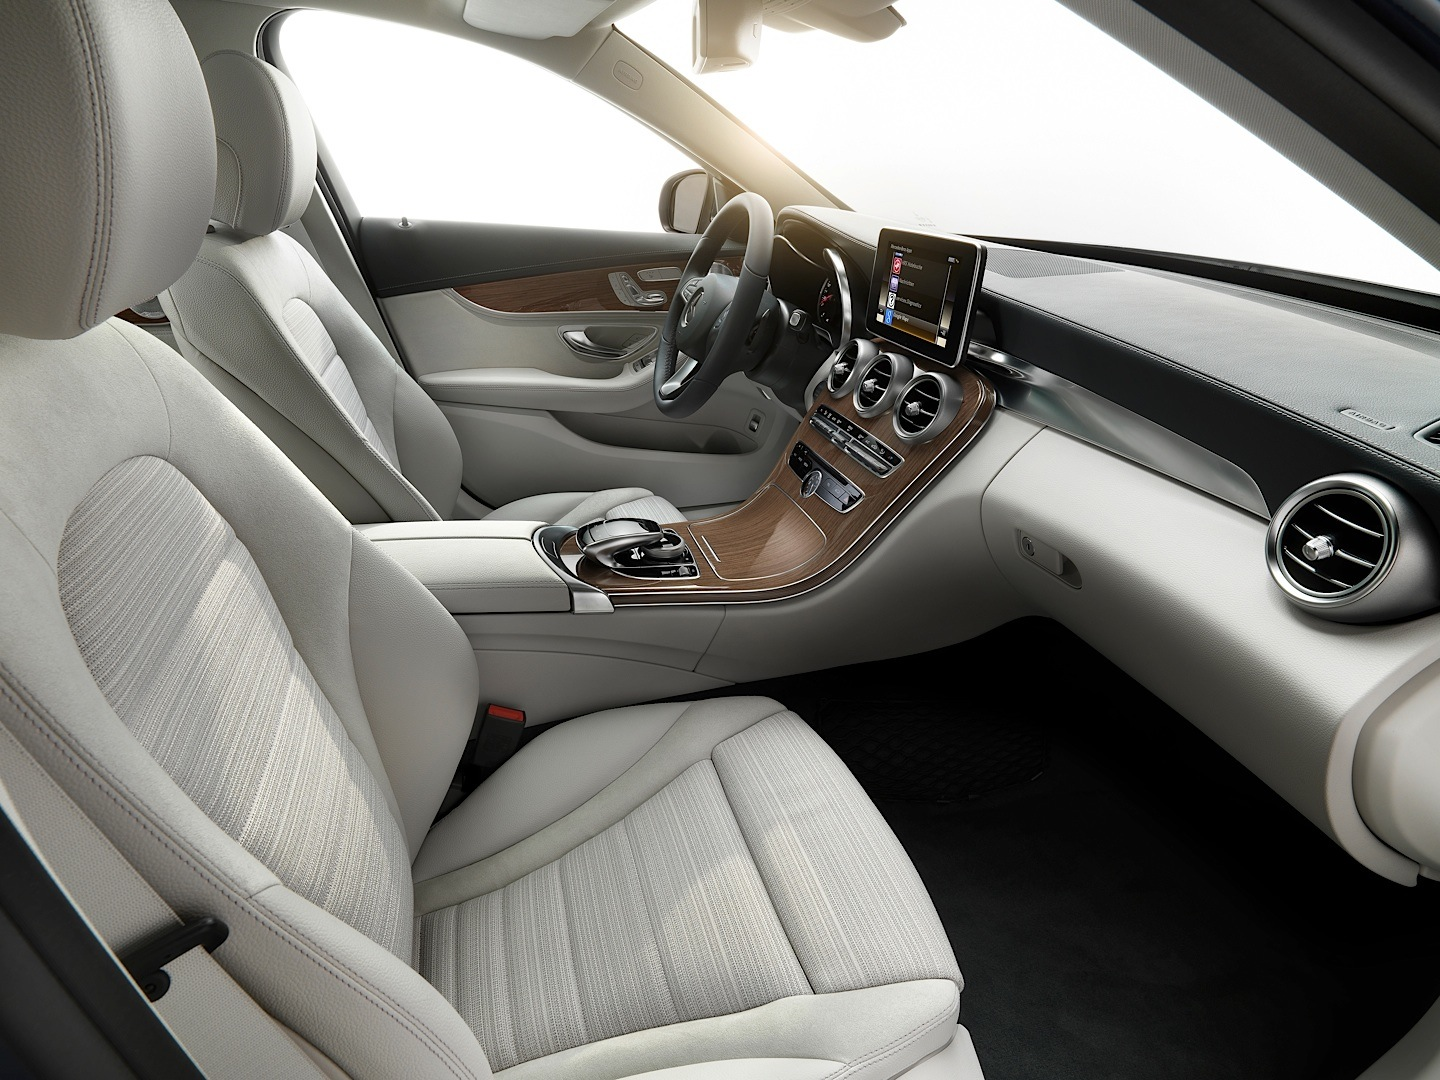 check-out-the-first-official-footage-with-the-new-c-class-w205-video-1080p-3